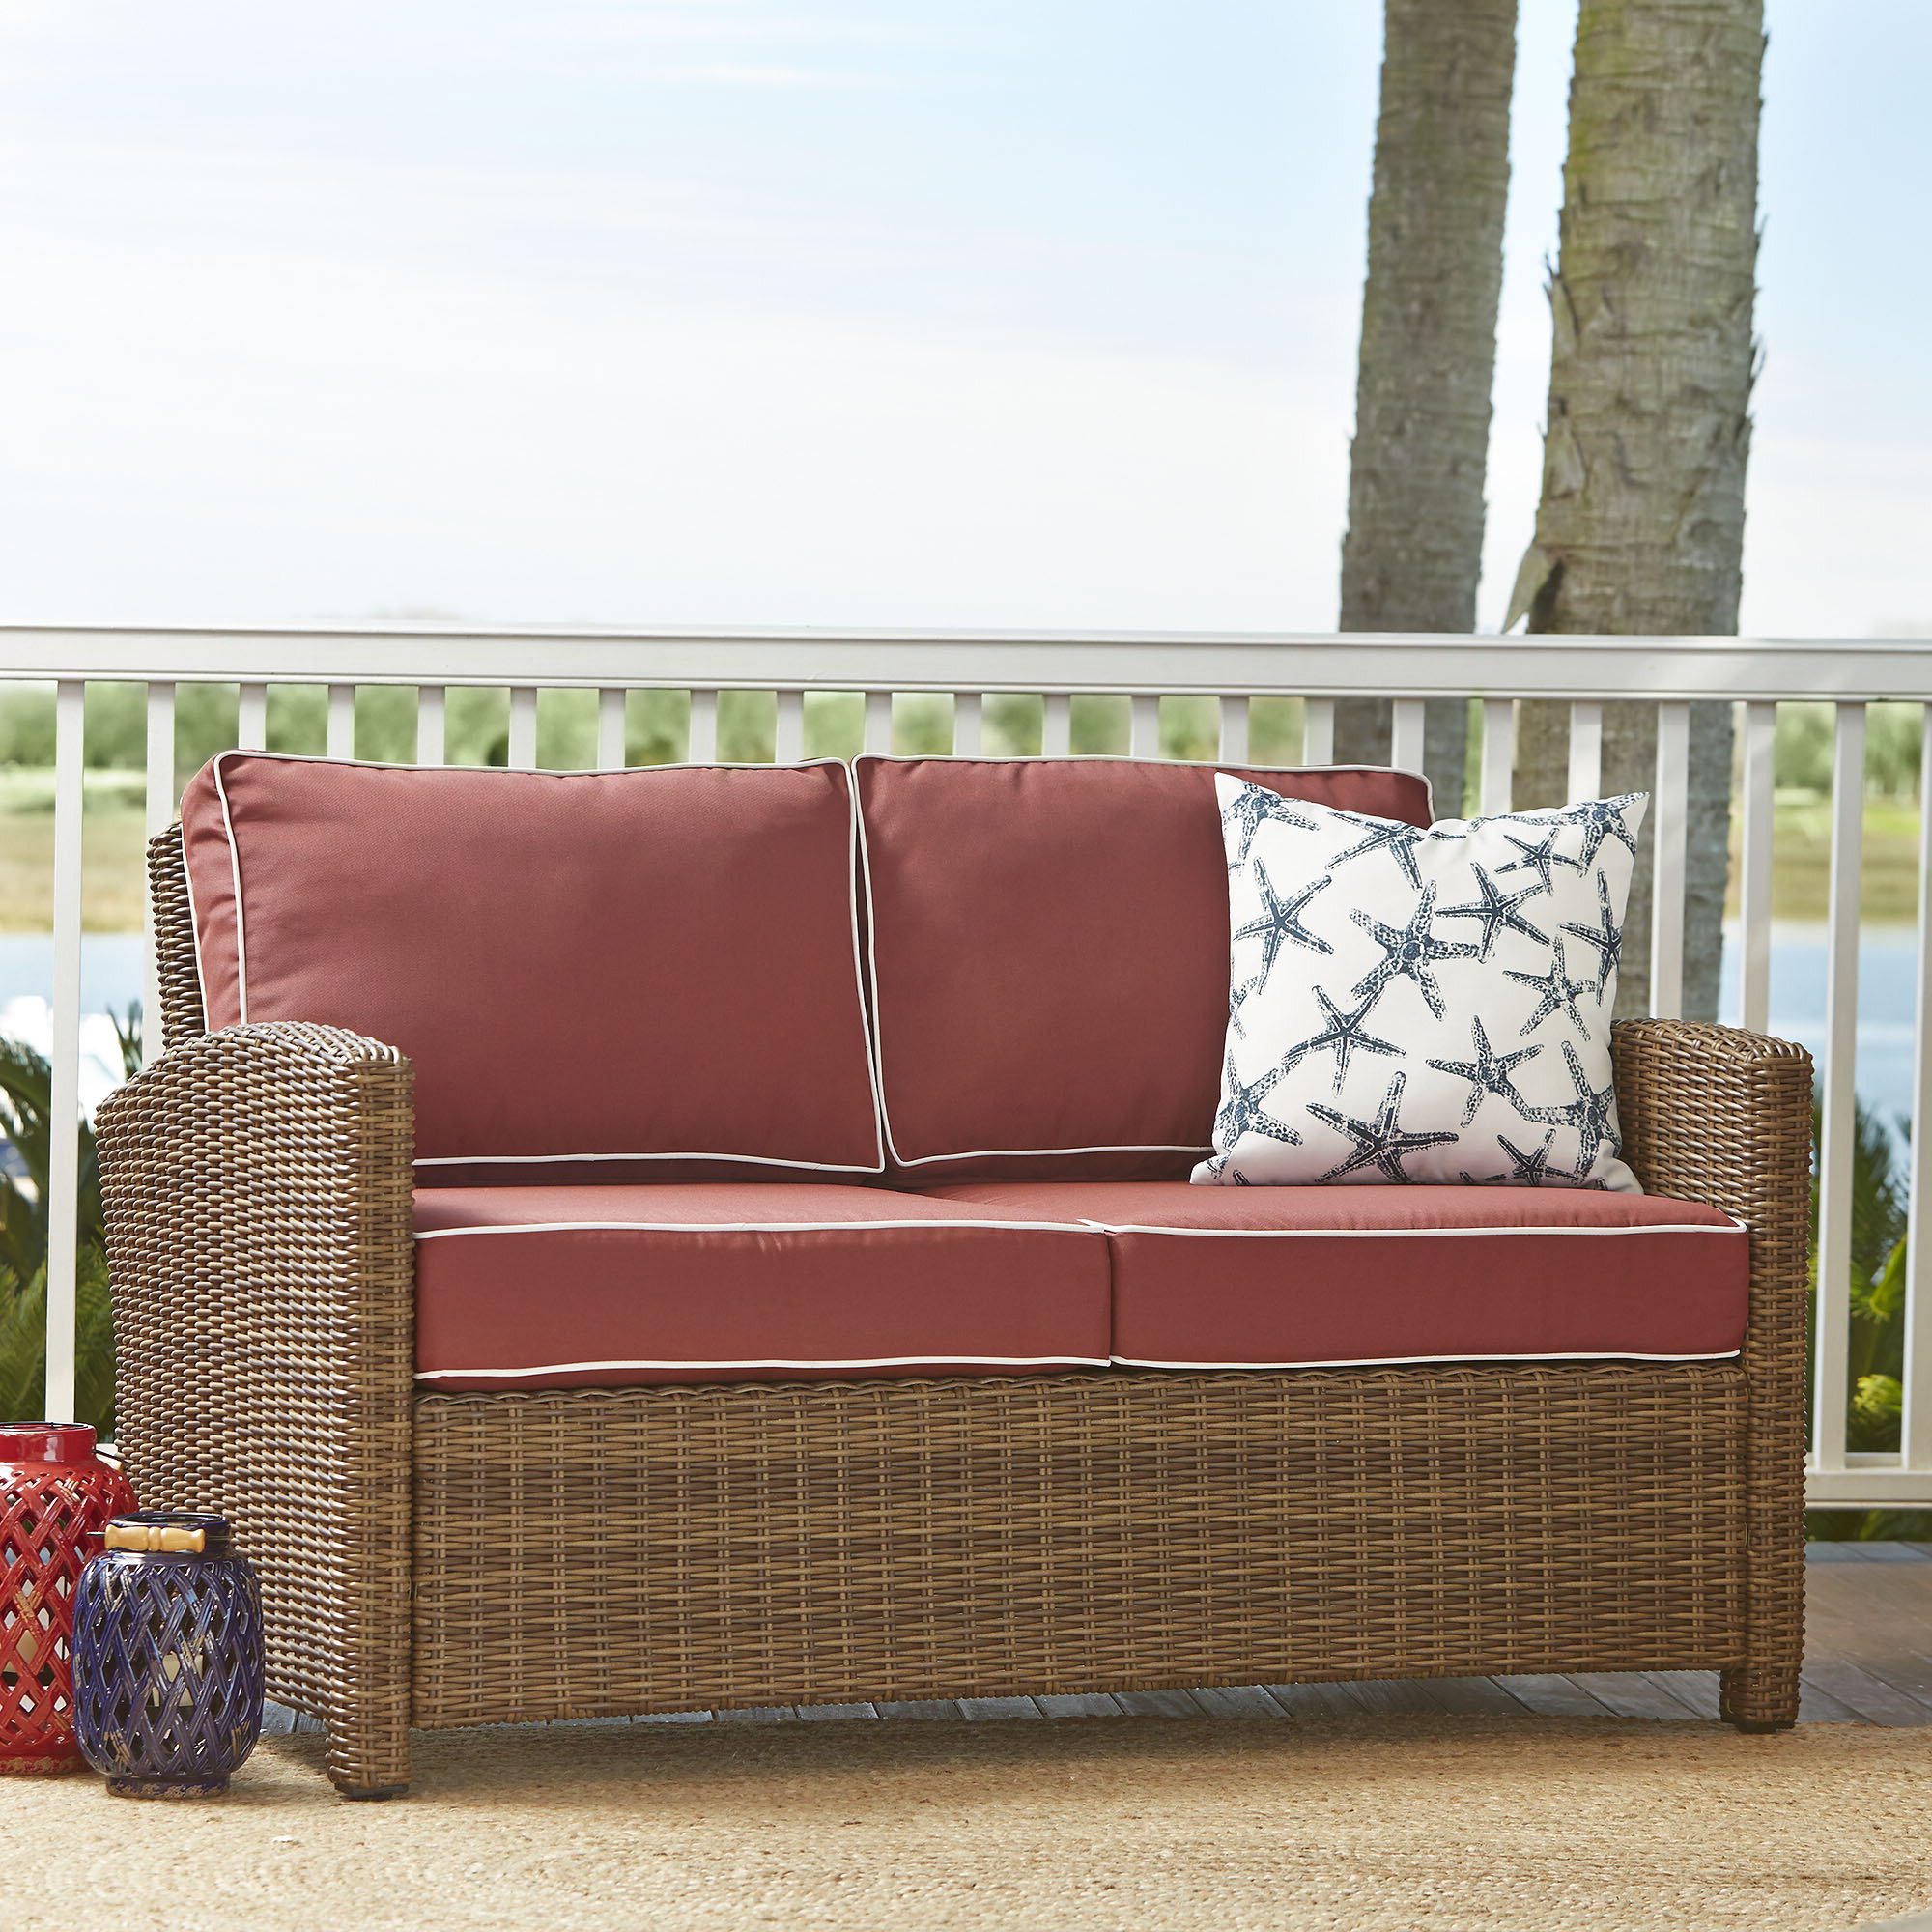 Lawson Wicker Loveseat With Cushions Intended For Recent Lawson Patio Sofas With Cushions (Gallery 13 of 25)